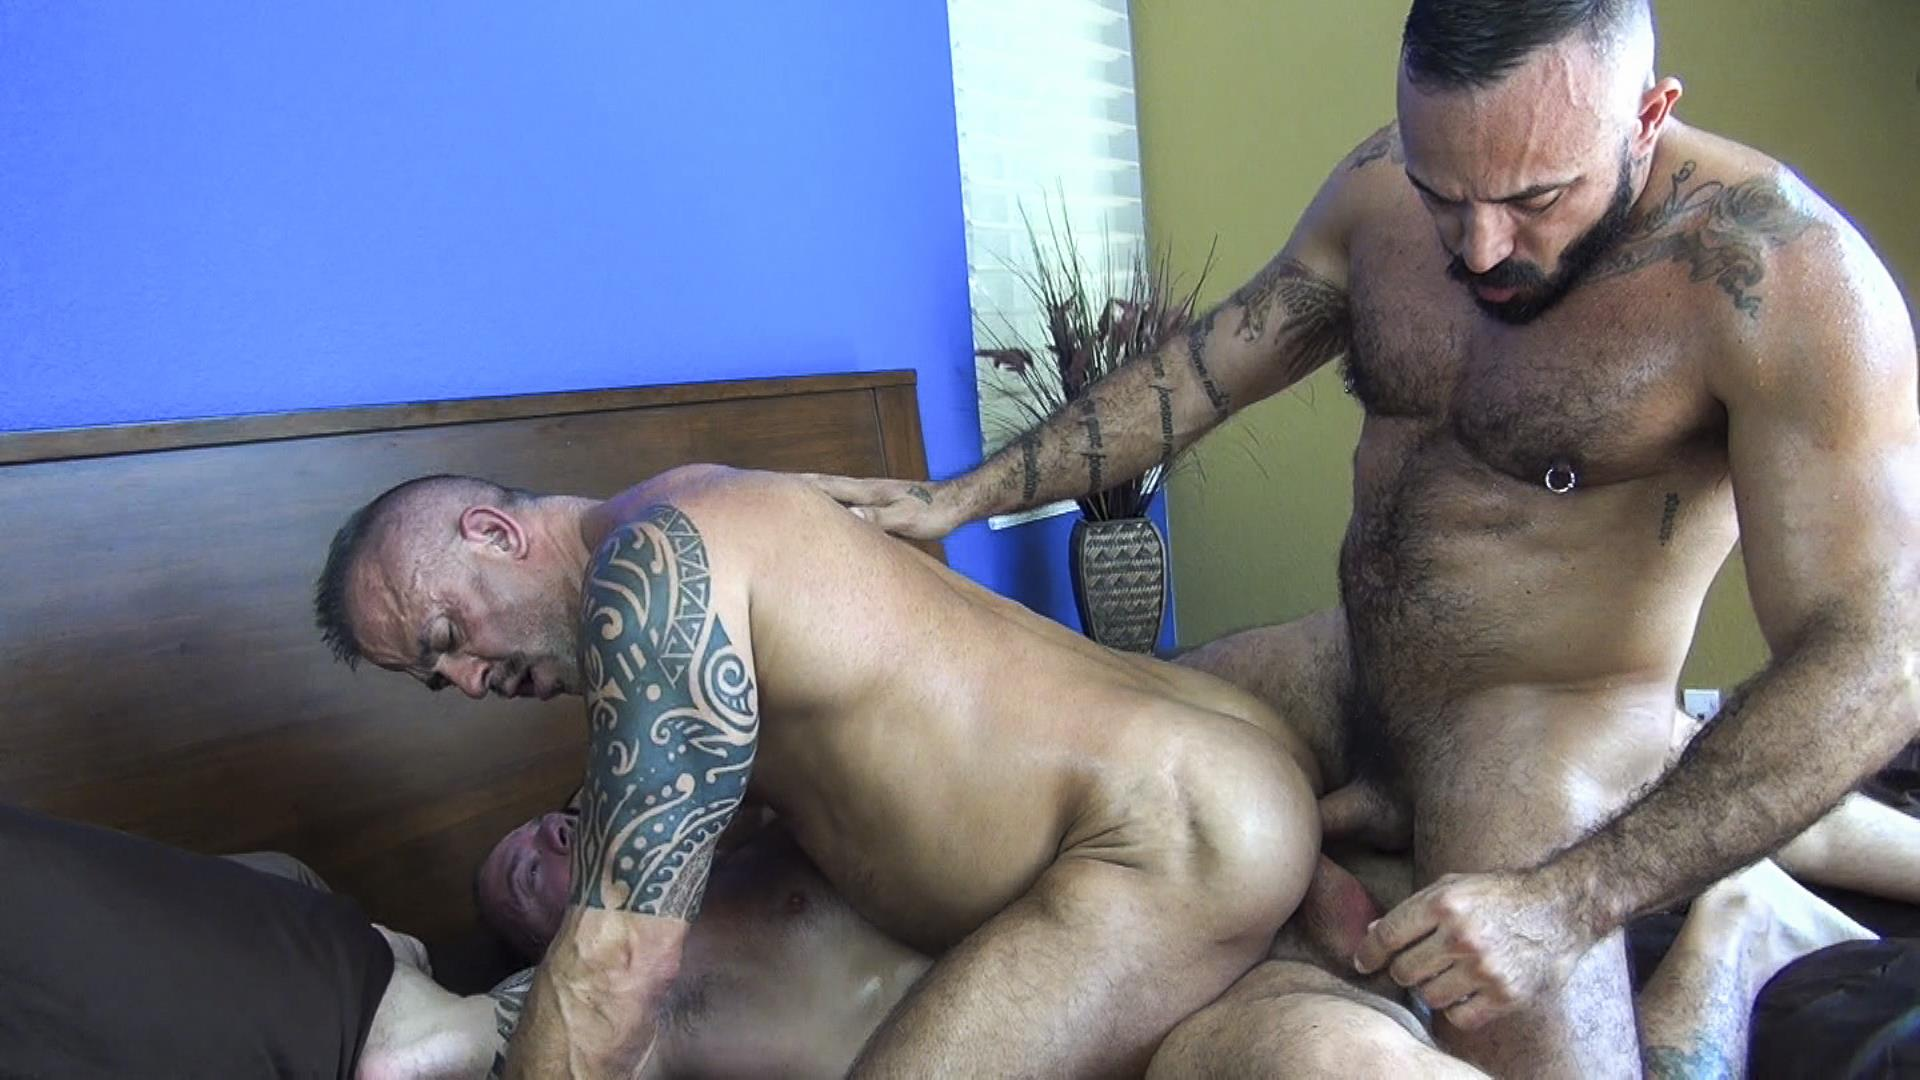 Raw-Fuck-Club-Alessio-Romero-and-Jon-Galt-and-Vic-Rocco-Hairy-Muscle-Daddy-Bareback-Amateur-Gay-Porn-1 Hairy Muscle Daddy Threeway Double Bareback Penetration